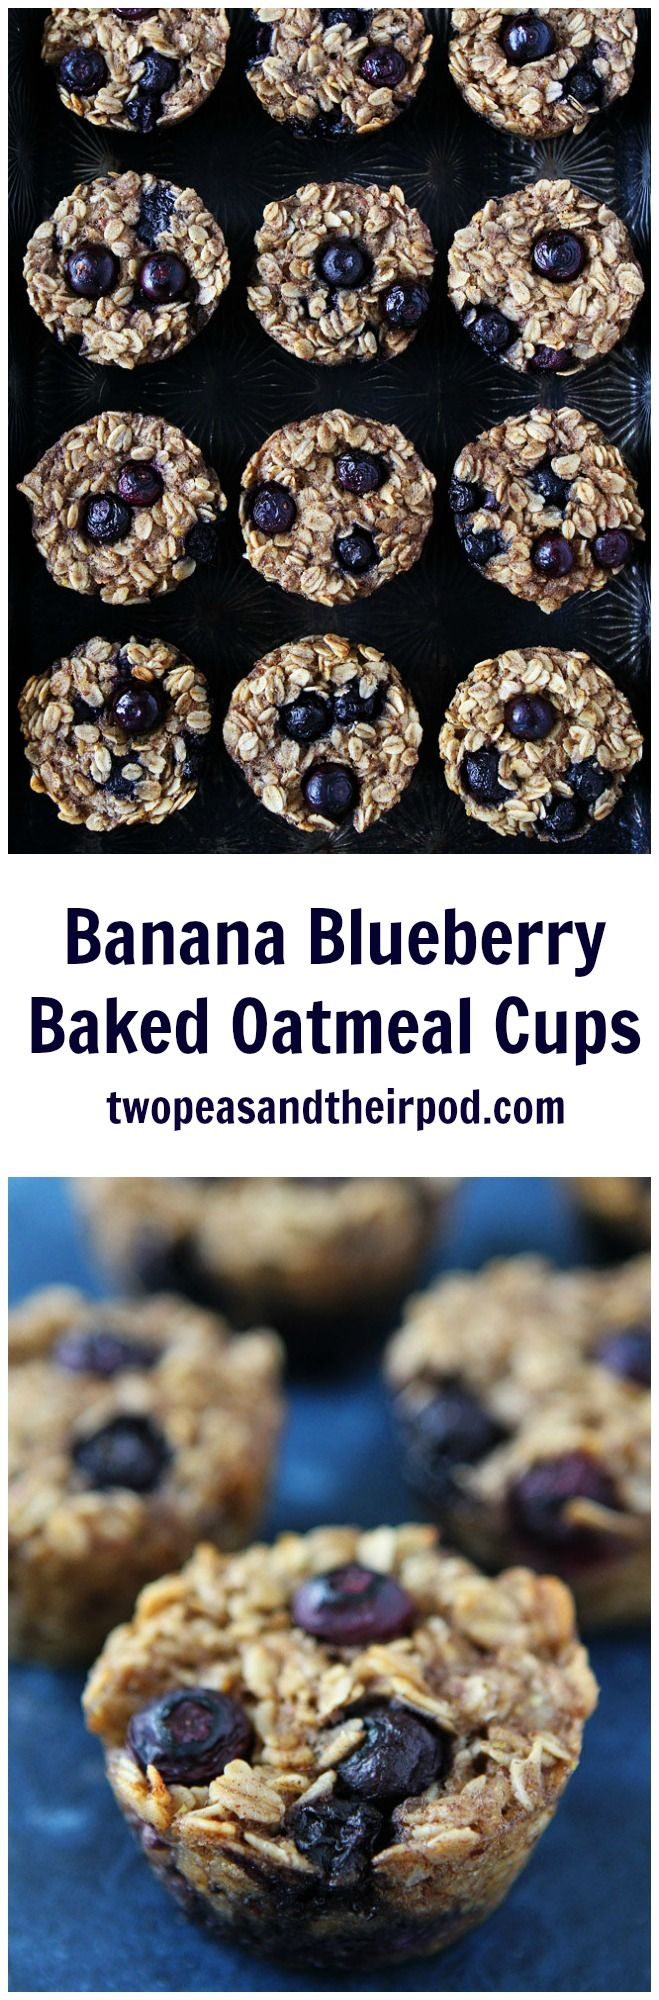 Banana Blueberry Baked Oatmeal Cups Recipe on twopeasandtheirpod.com These easy baked oatmeal muffins make a great breakfast on the go or healthy snack! Kids and adults love them!